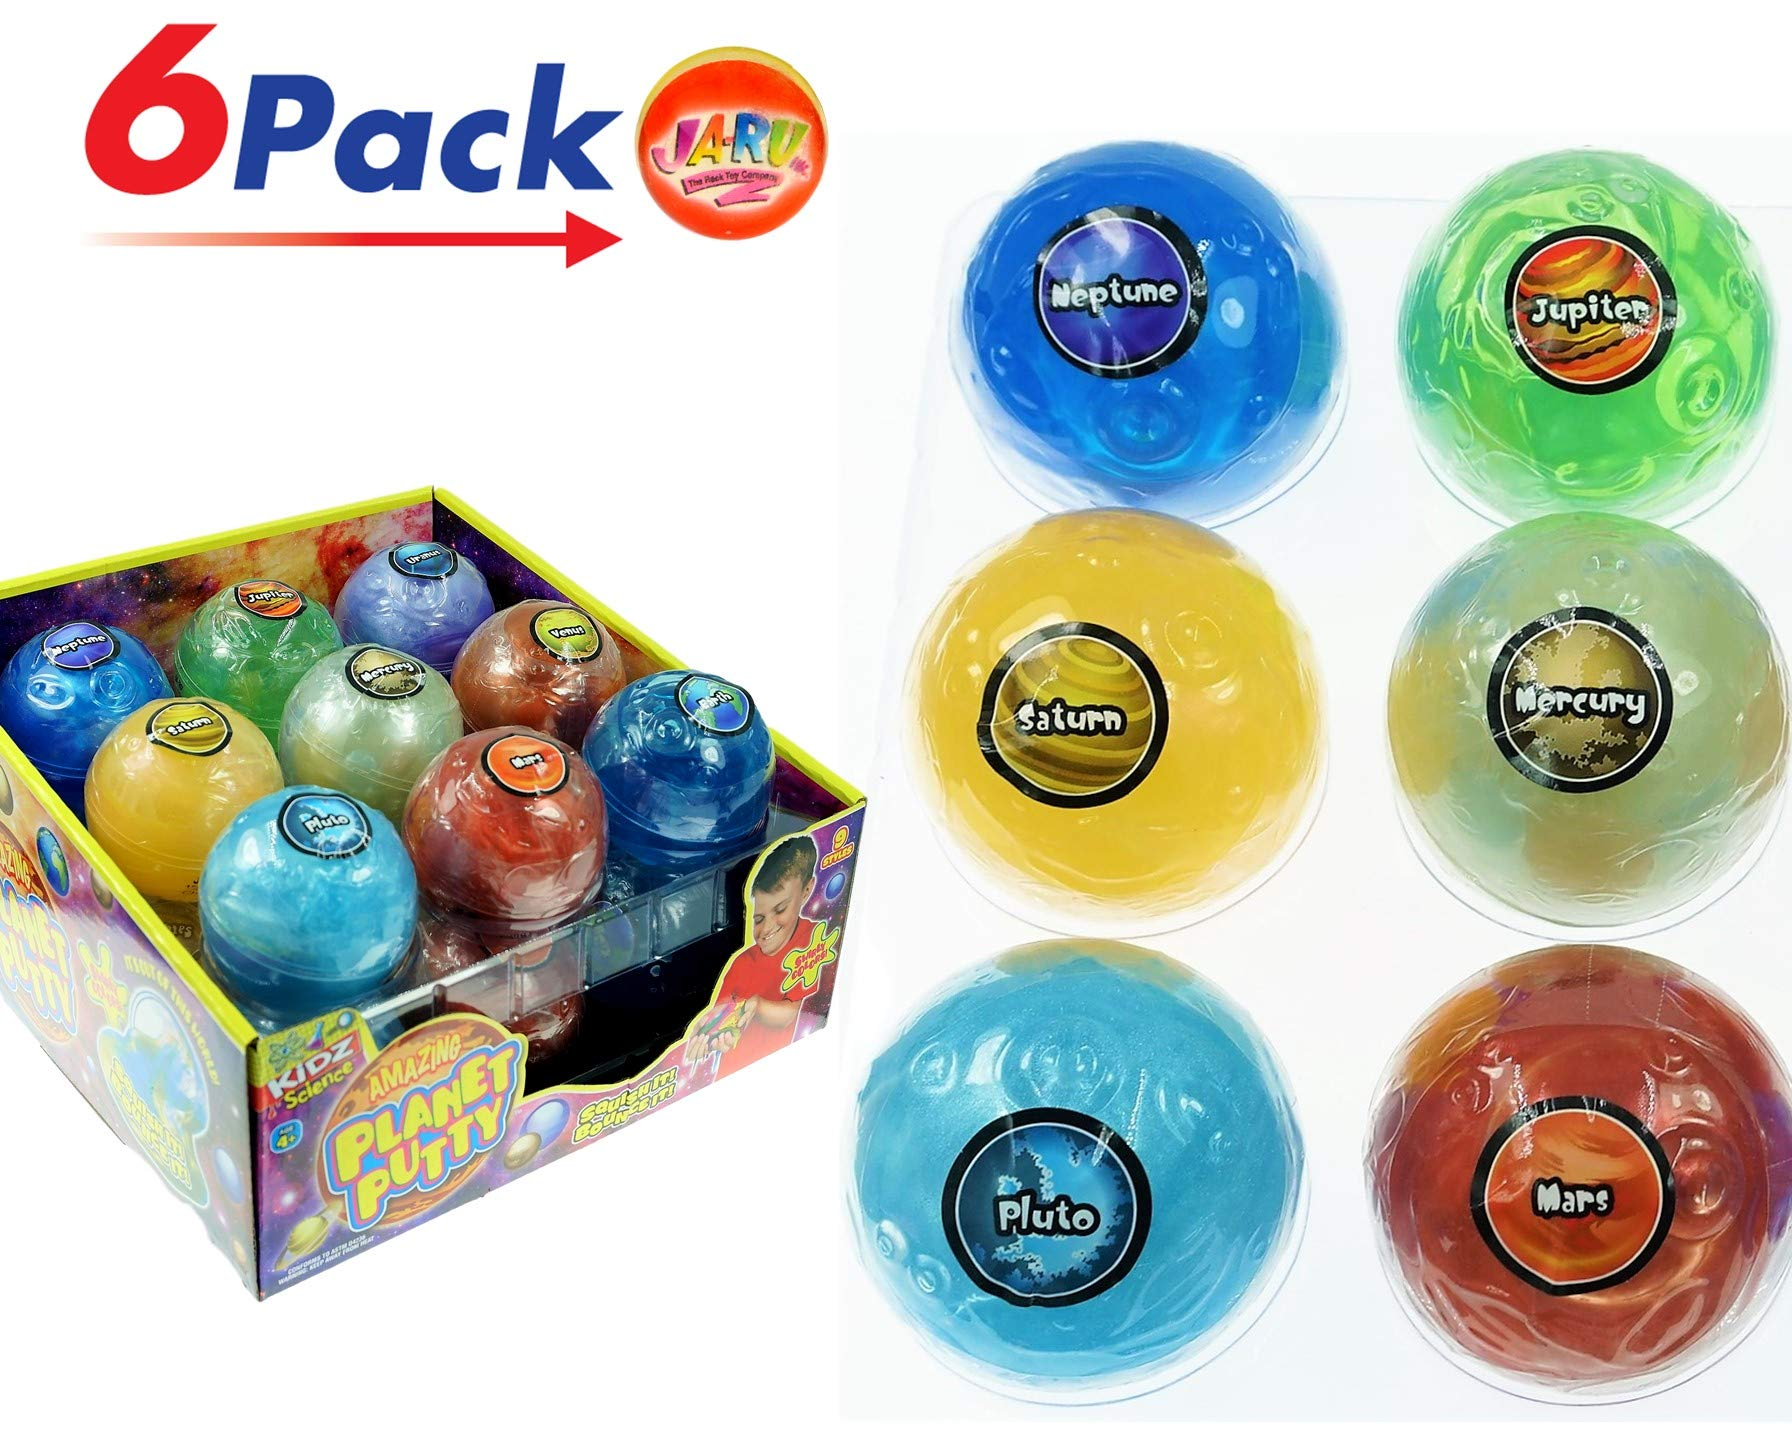 JA-RU Planet Putty Galaxy Solar System Slime (Pack of 6 Planets Assorted) Metallic Colors Fun Educational Science Game Plus 1 Collectable Bouncy Ball. 5459-6p by JA-RU